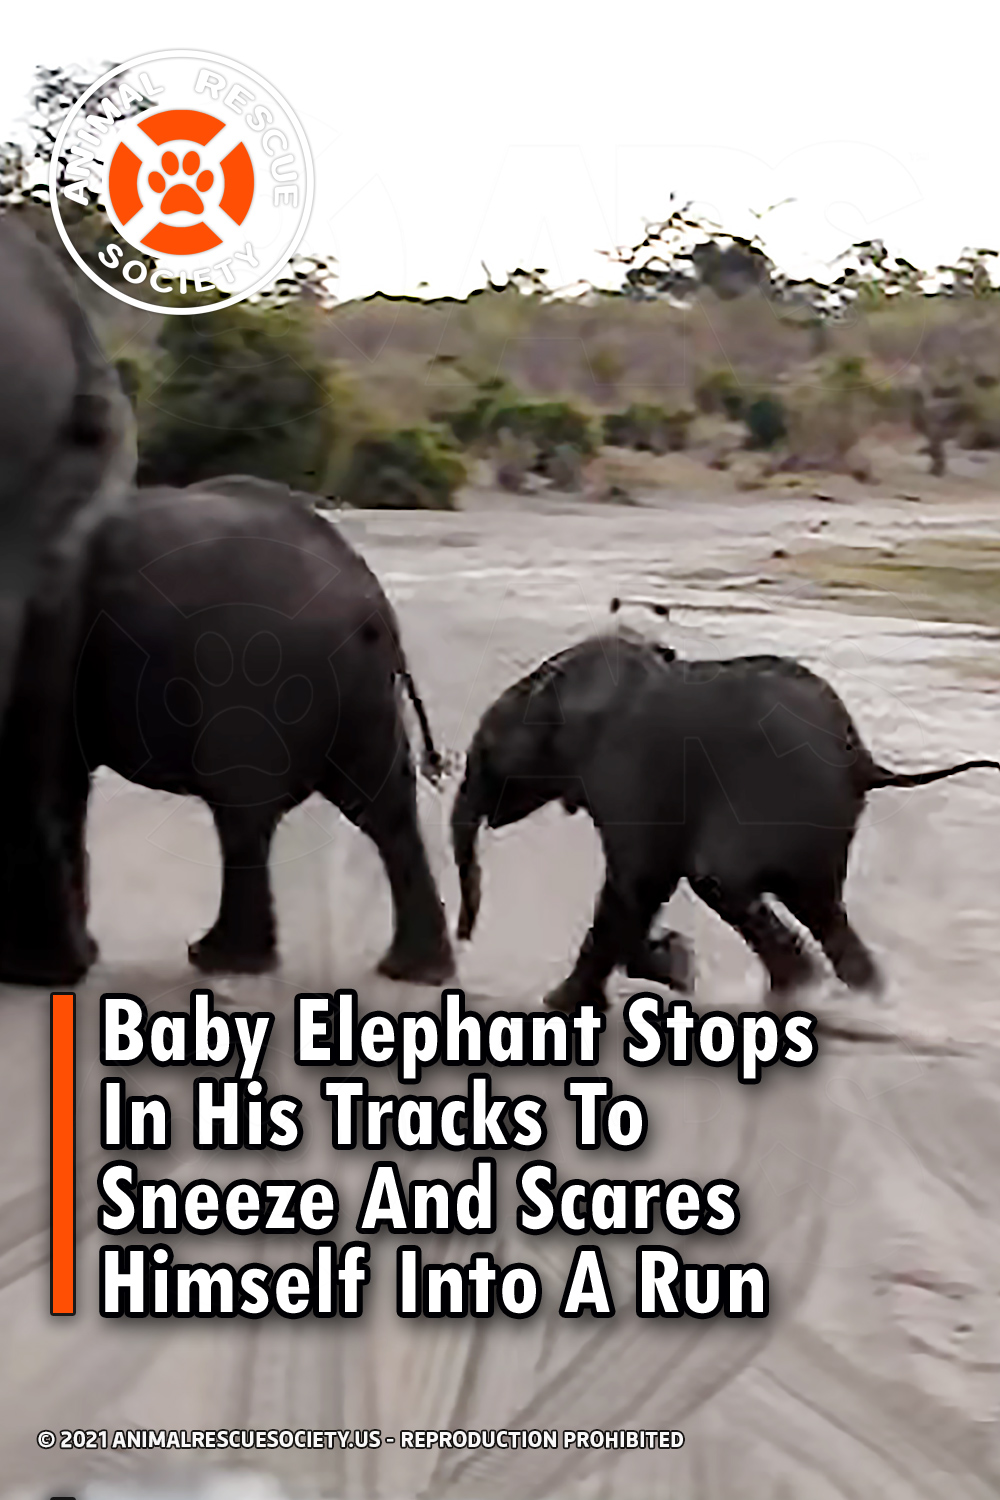 Baby Elephant Stops In His Tracks To Sneeze And Scares Himself Into A Run